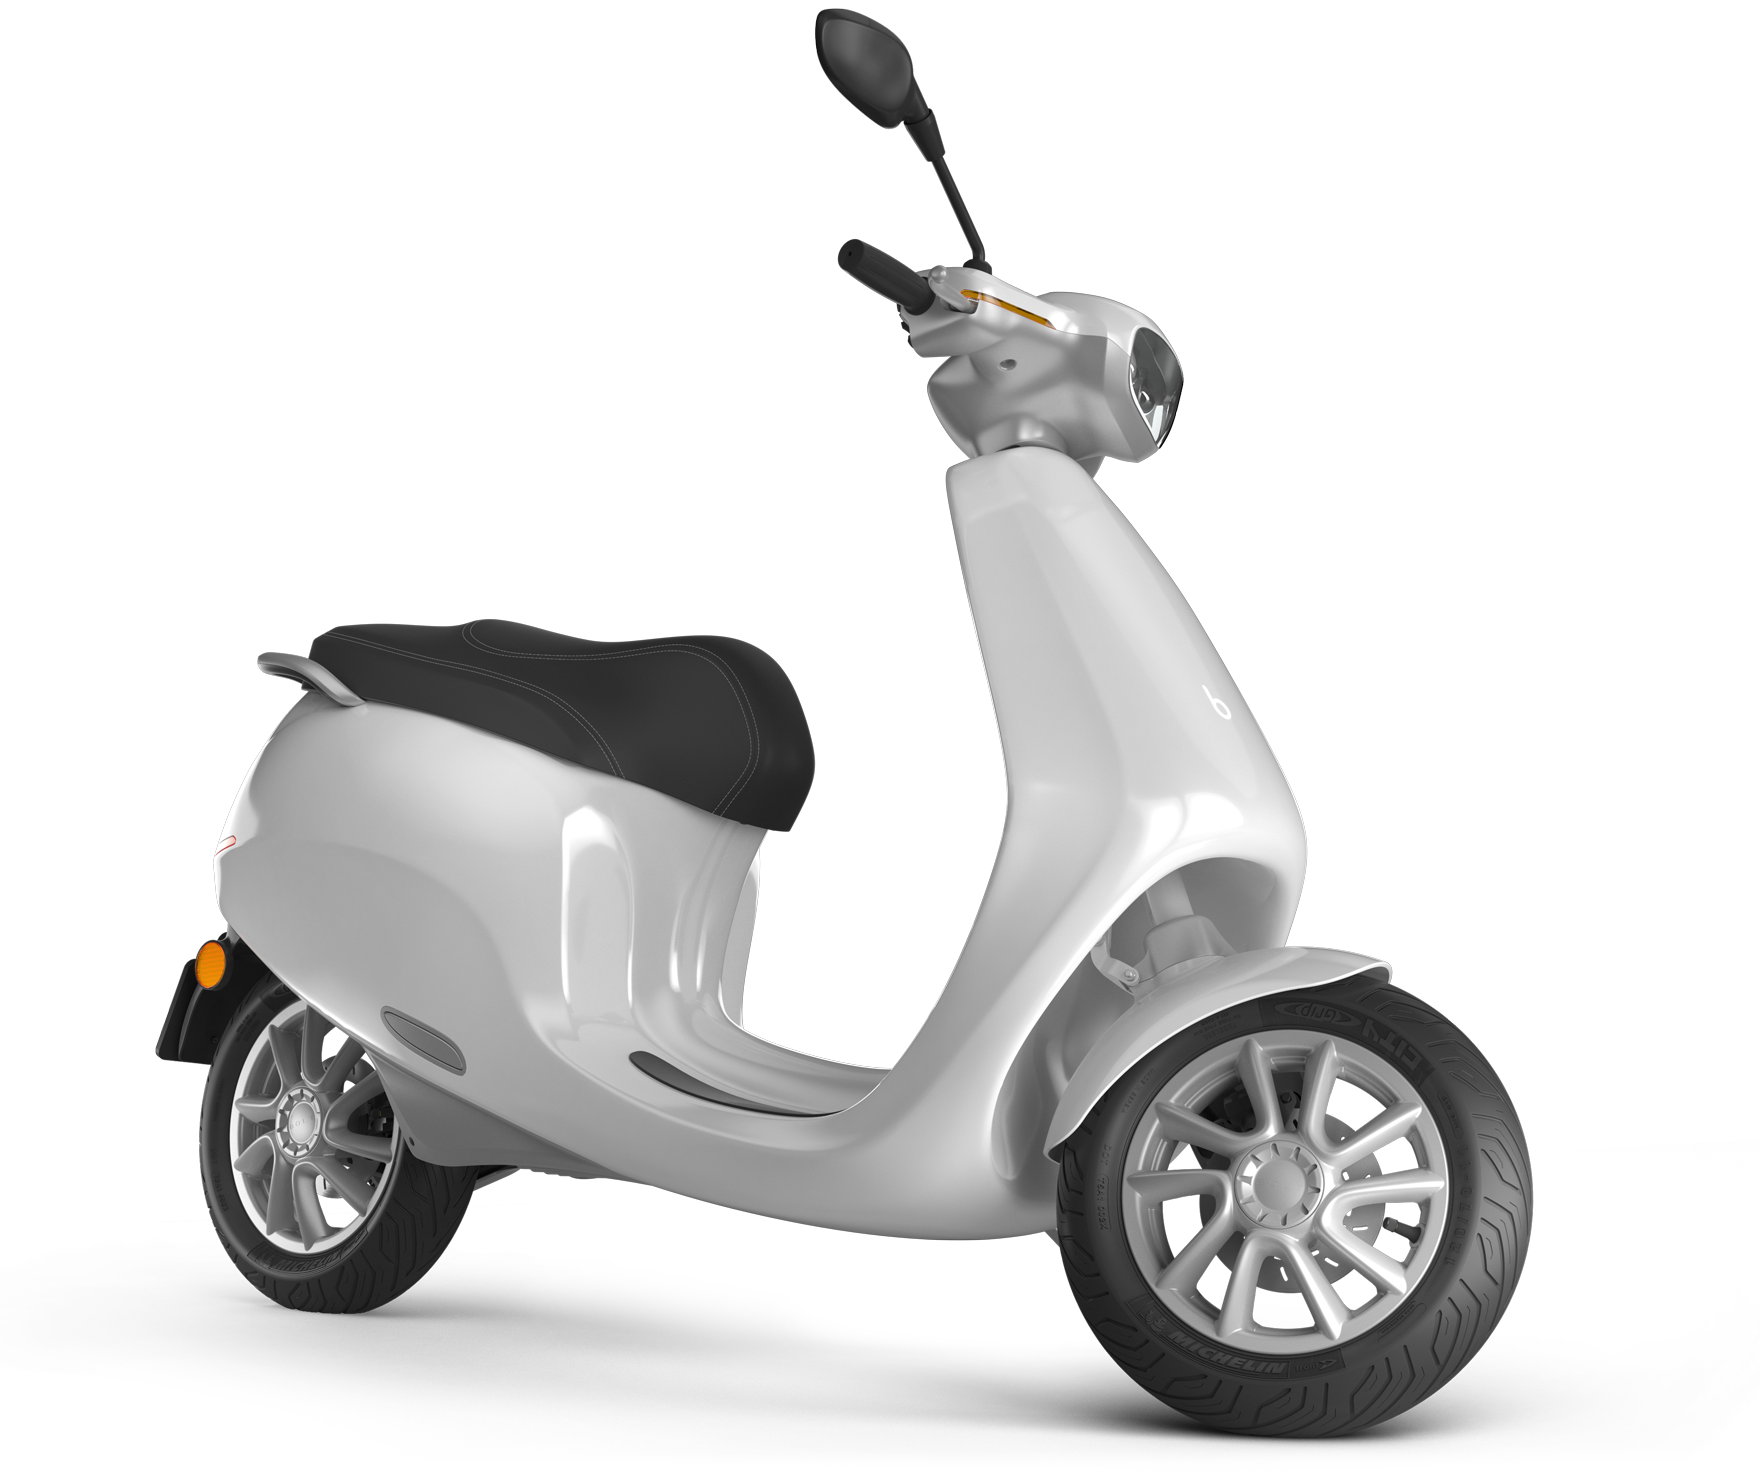 Appscooter Goes Up To 400 Km Far Accelerates From 0 To 45 Km H In 3 3 Seconds Has 65 Liter Storage And Safely Scooter Design Electric Scooter Electric Moped